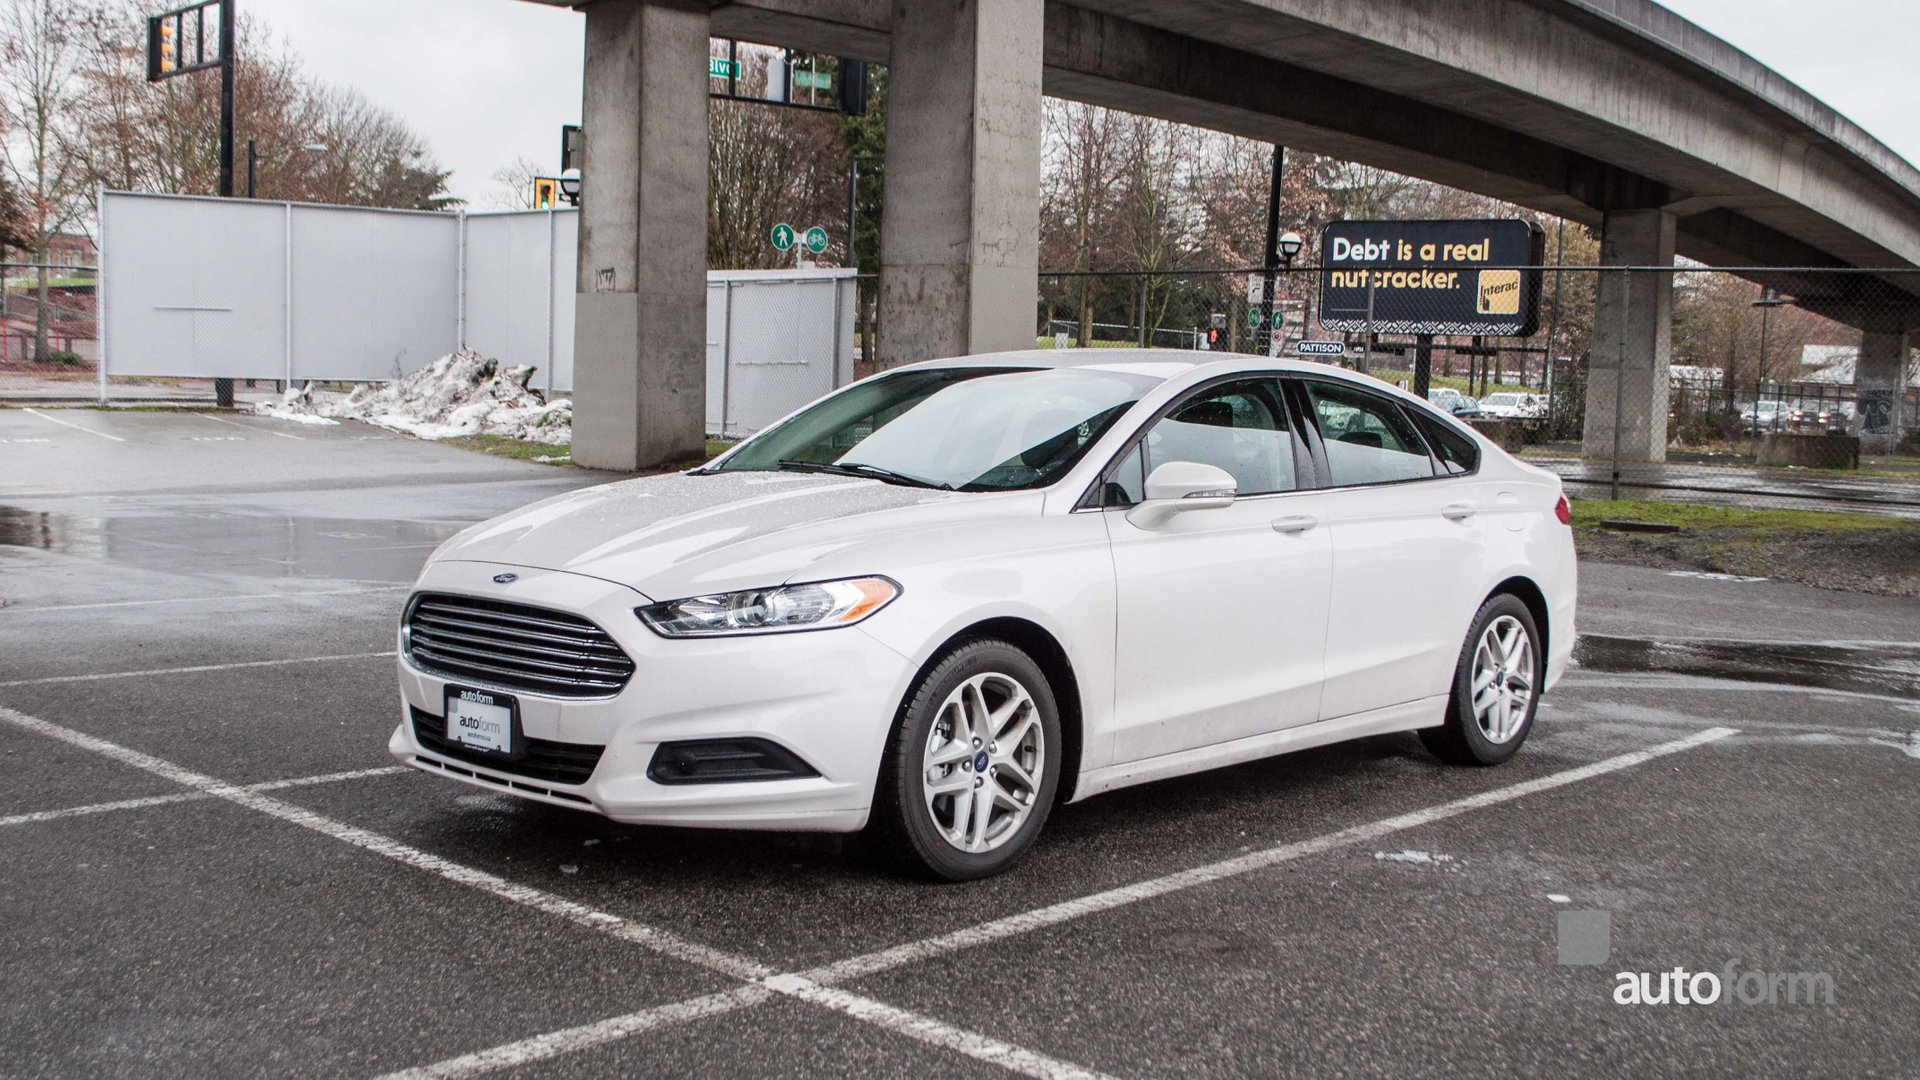 2016 ford fusion sedan se fwd 34mpg